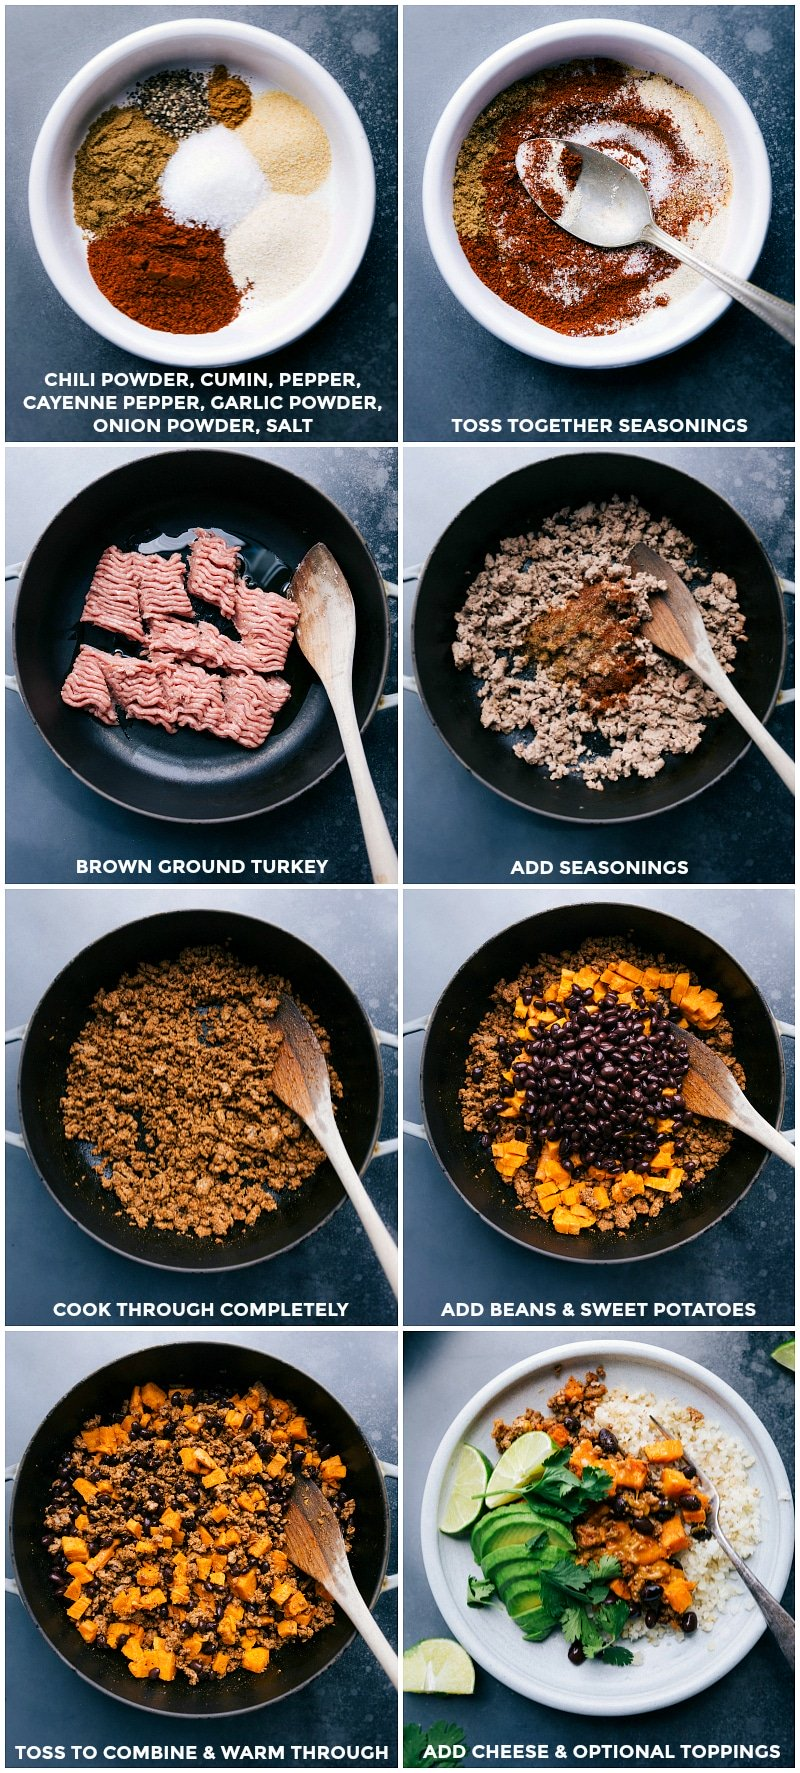 Process shots: combine the seasonings; mix seasonings together; brown the ground turkey; add in the seasonings; cook through completely; add beans and cooked sweet potatoes; combine and heat throughout; add cheese and optional toppings.